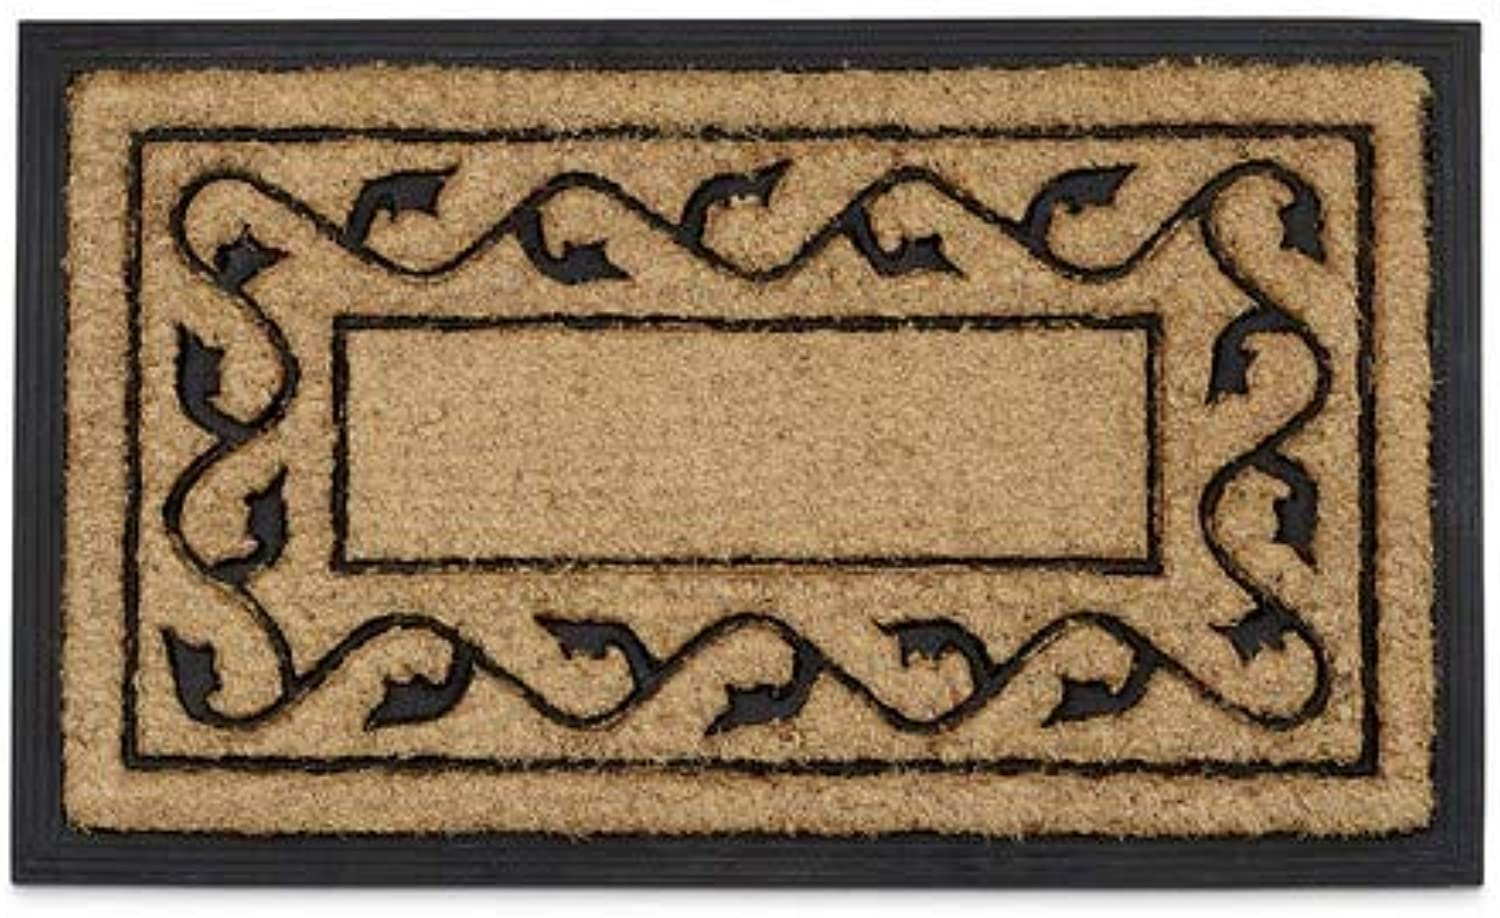 Relaxdays Coconut Fiber & PVC Rubber Doormat Anti-Slip Welcome Mat for Indoor & Outdoor Use w  Floral Pattern made of Sustainable Coir Floor Mat 2 x 75 x 45 cm, Natural Brown